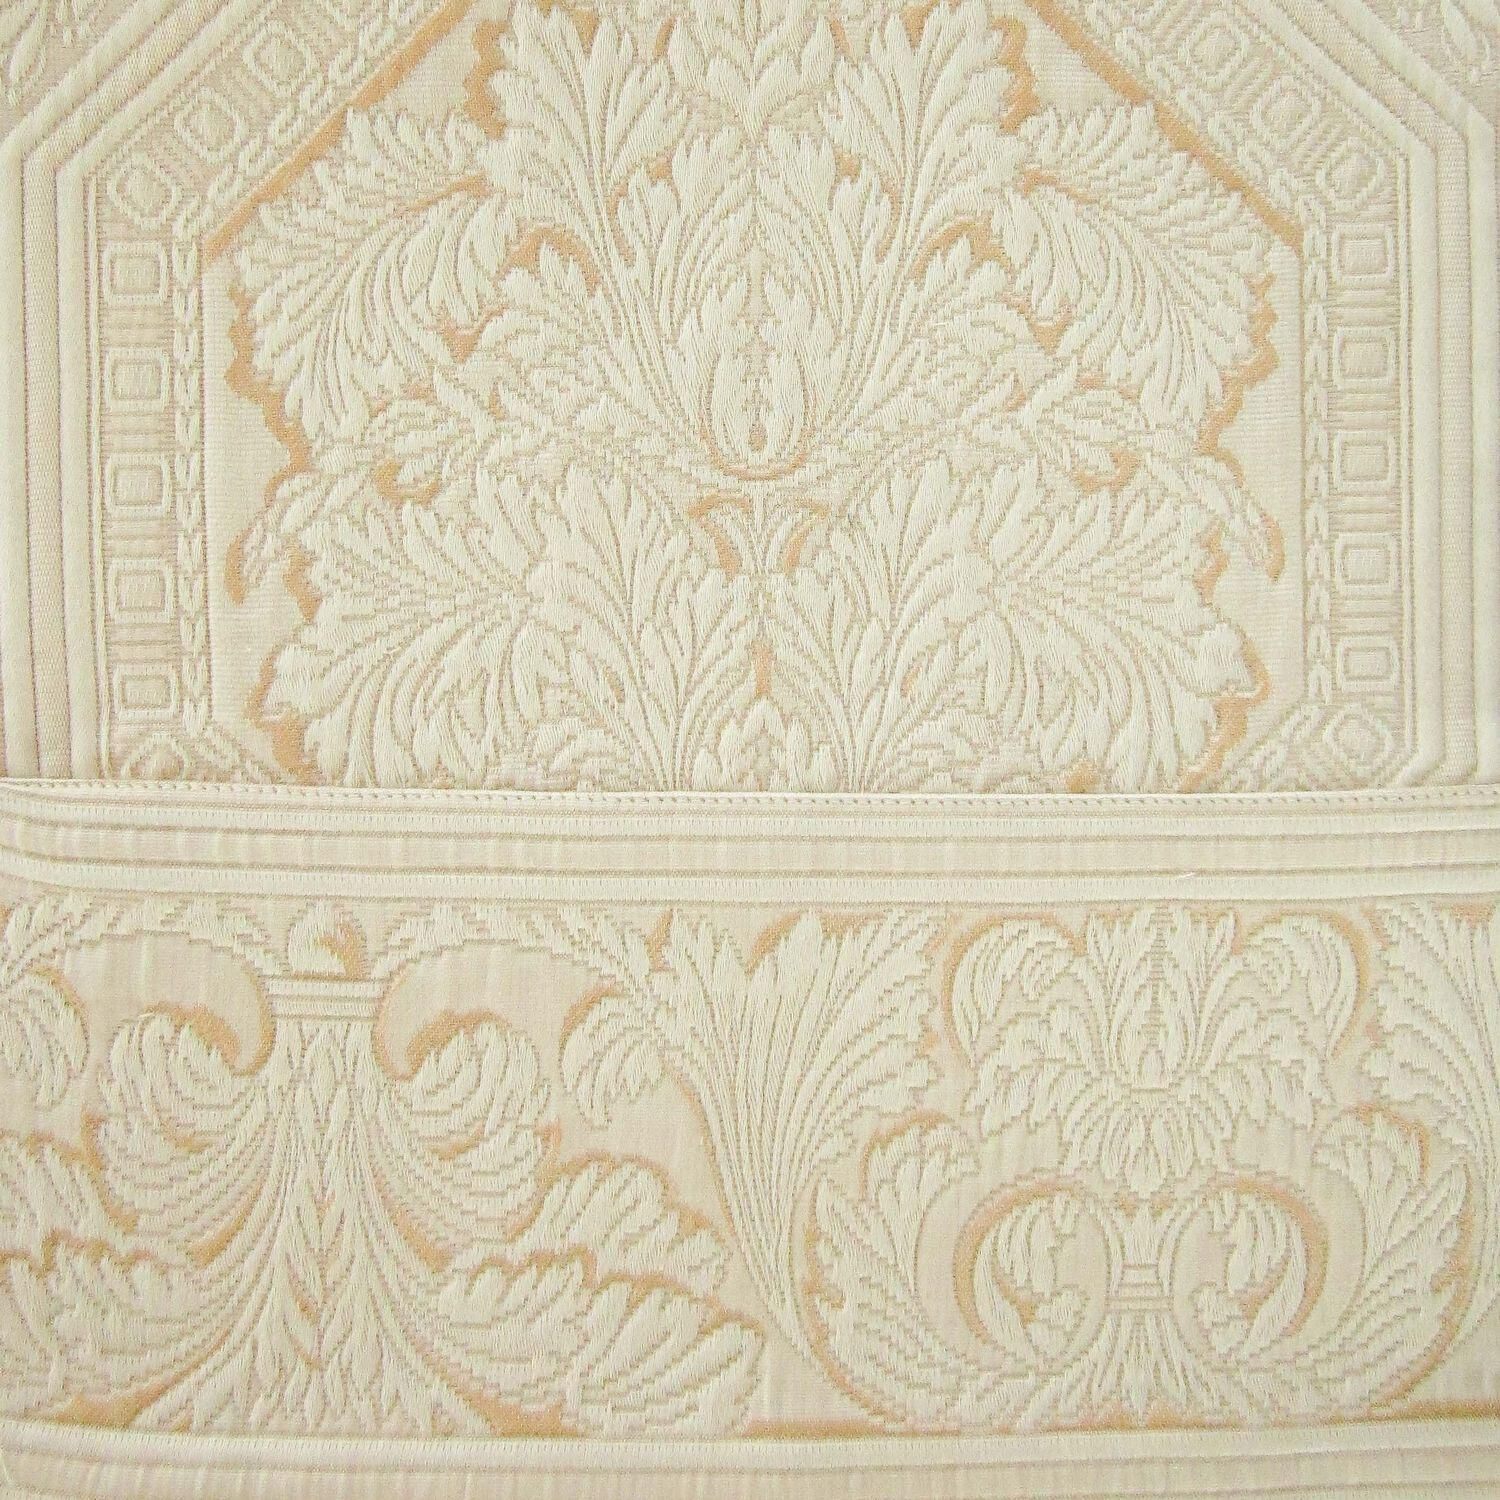 bed products paisley ivory bedspread bedding progressive cotton small jacquard matelasse